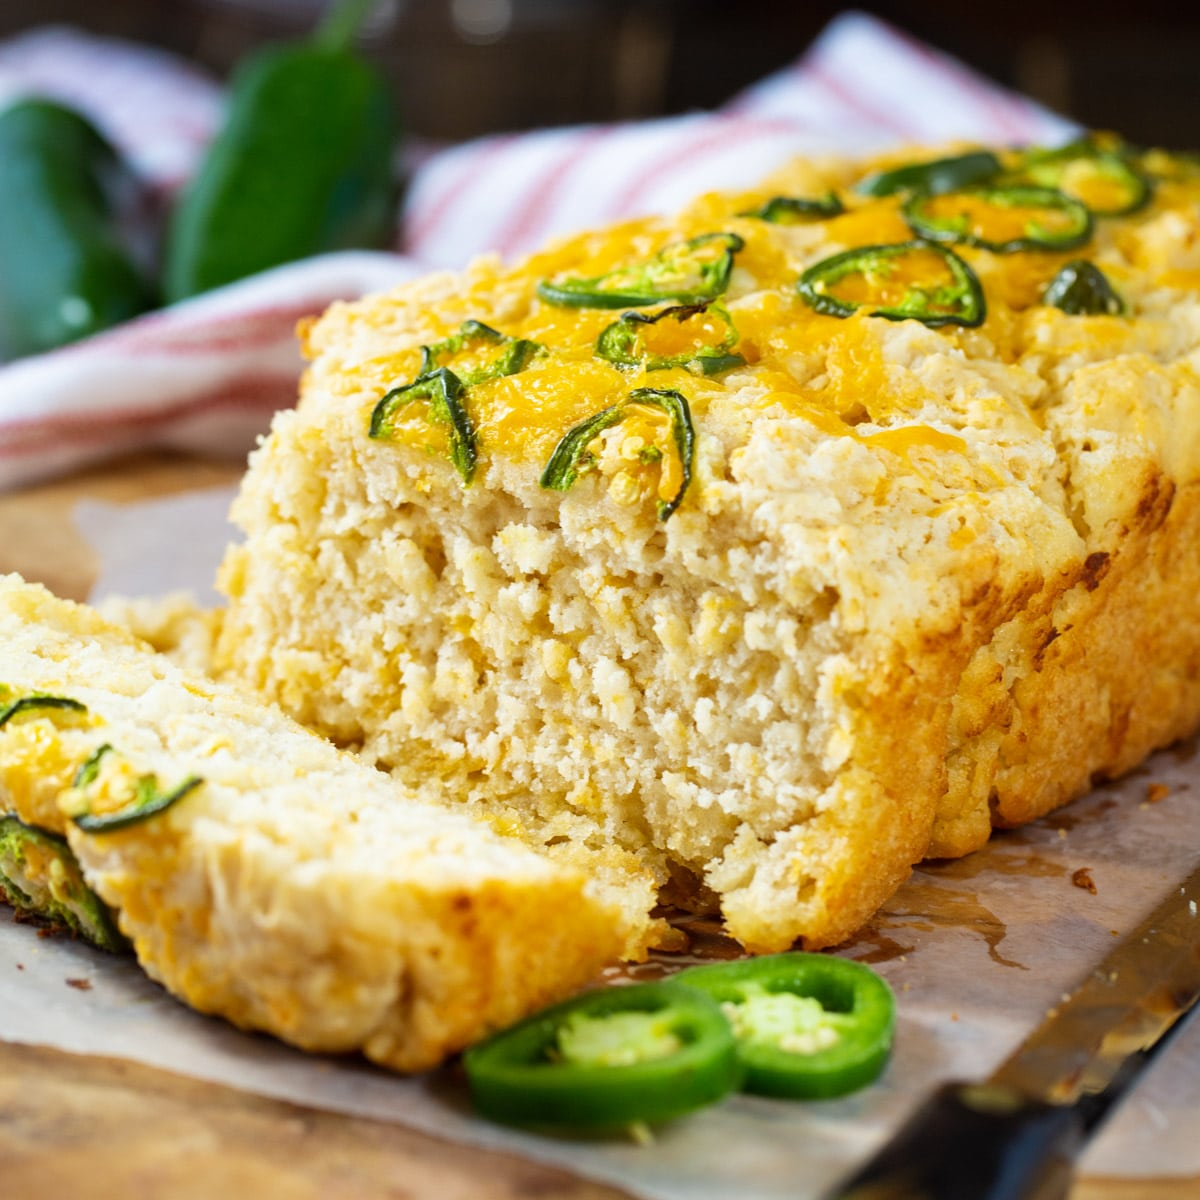 Jalapeno Beer Bread with a slice cut.